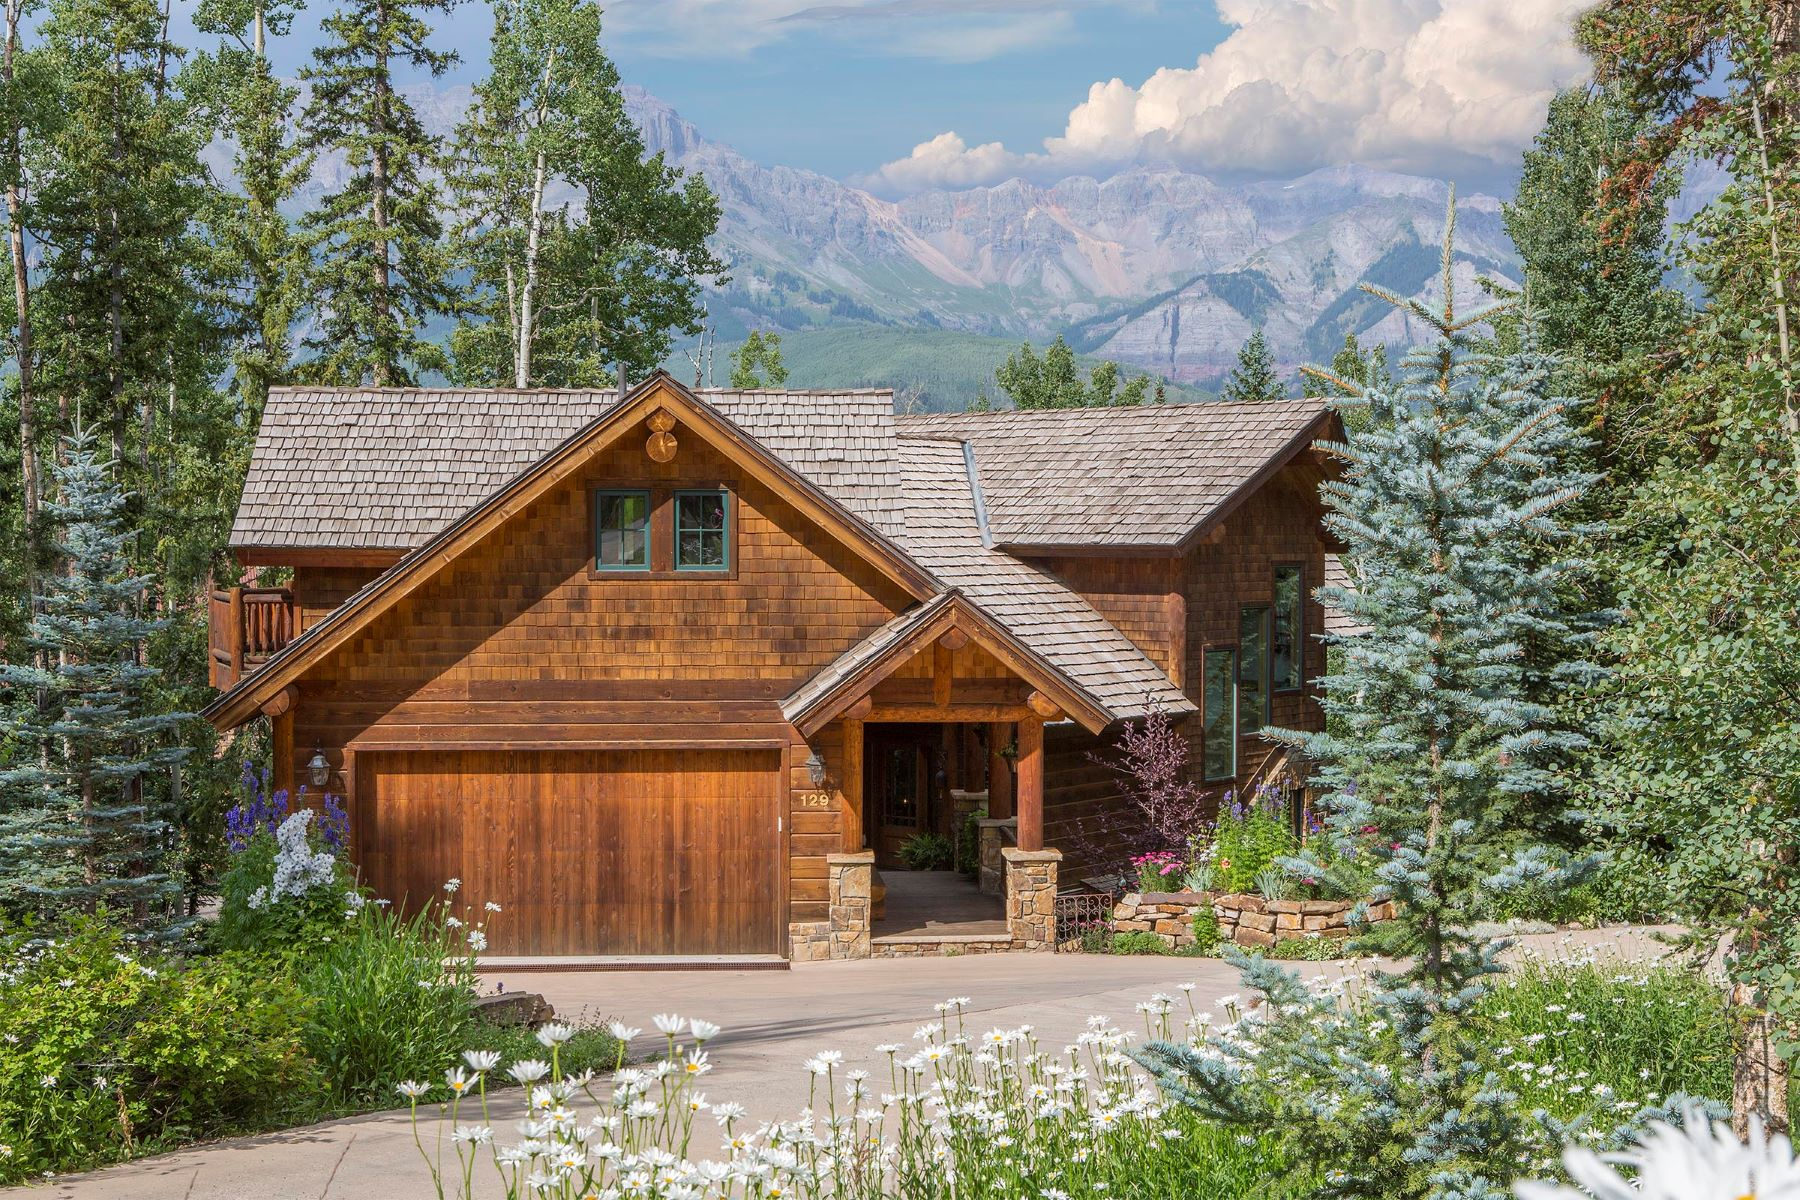 獨棟家庭住宅 為 出售 在 Epley Residence 129 Benchmark Drive, Mountain Village, Telluride, 科羅拉多州, 81435 美國